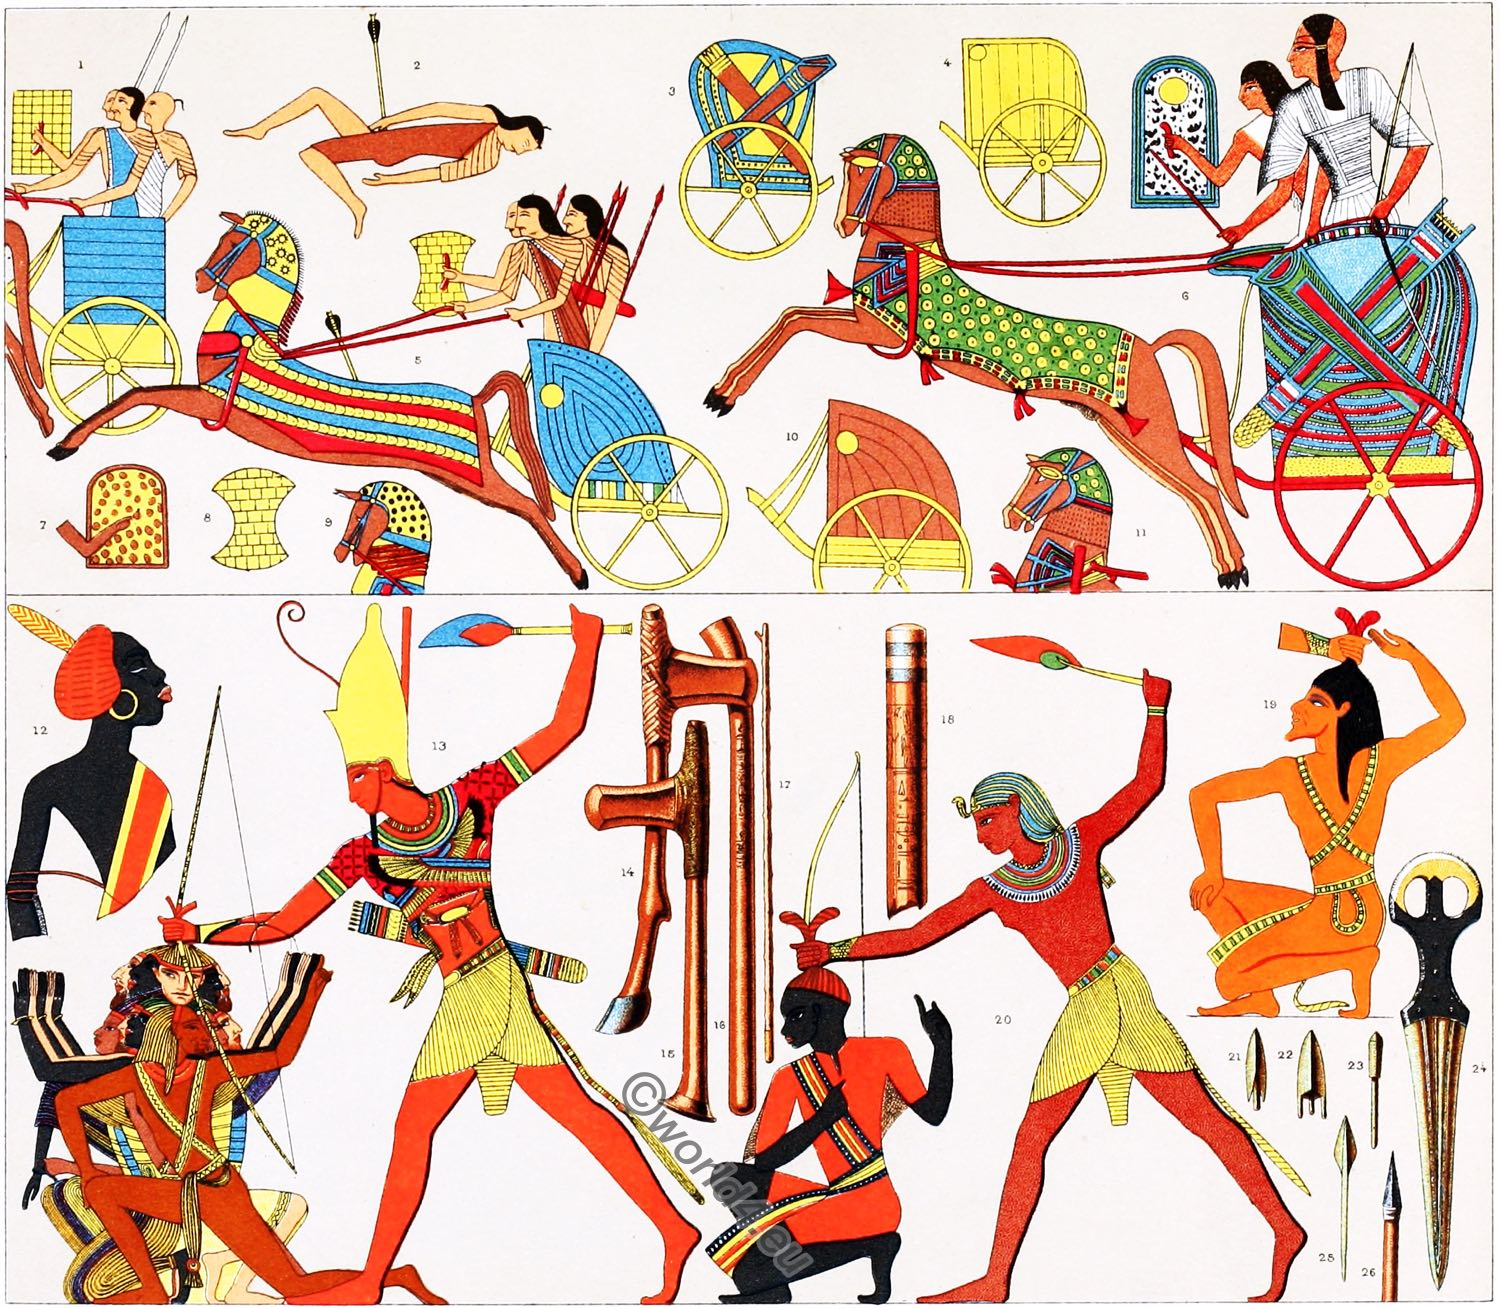 Egyptian, Asian, ancient, Arming, weapons, chariots, Warfare